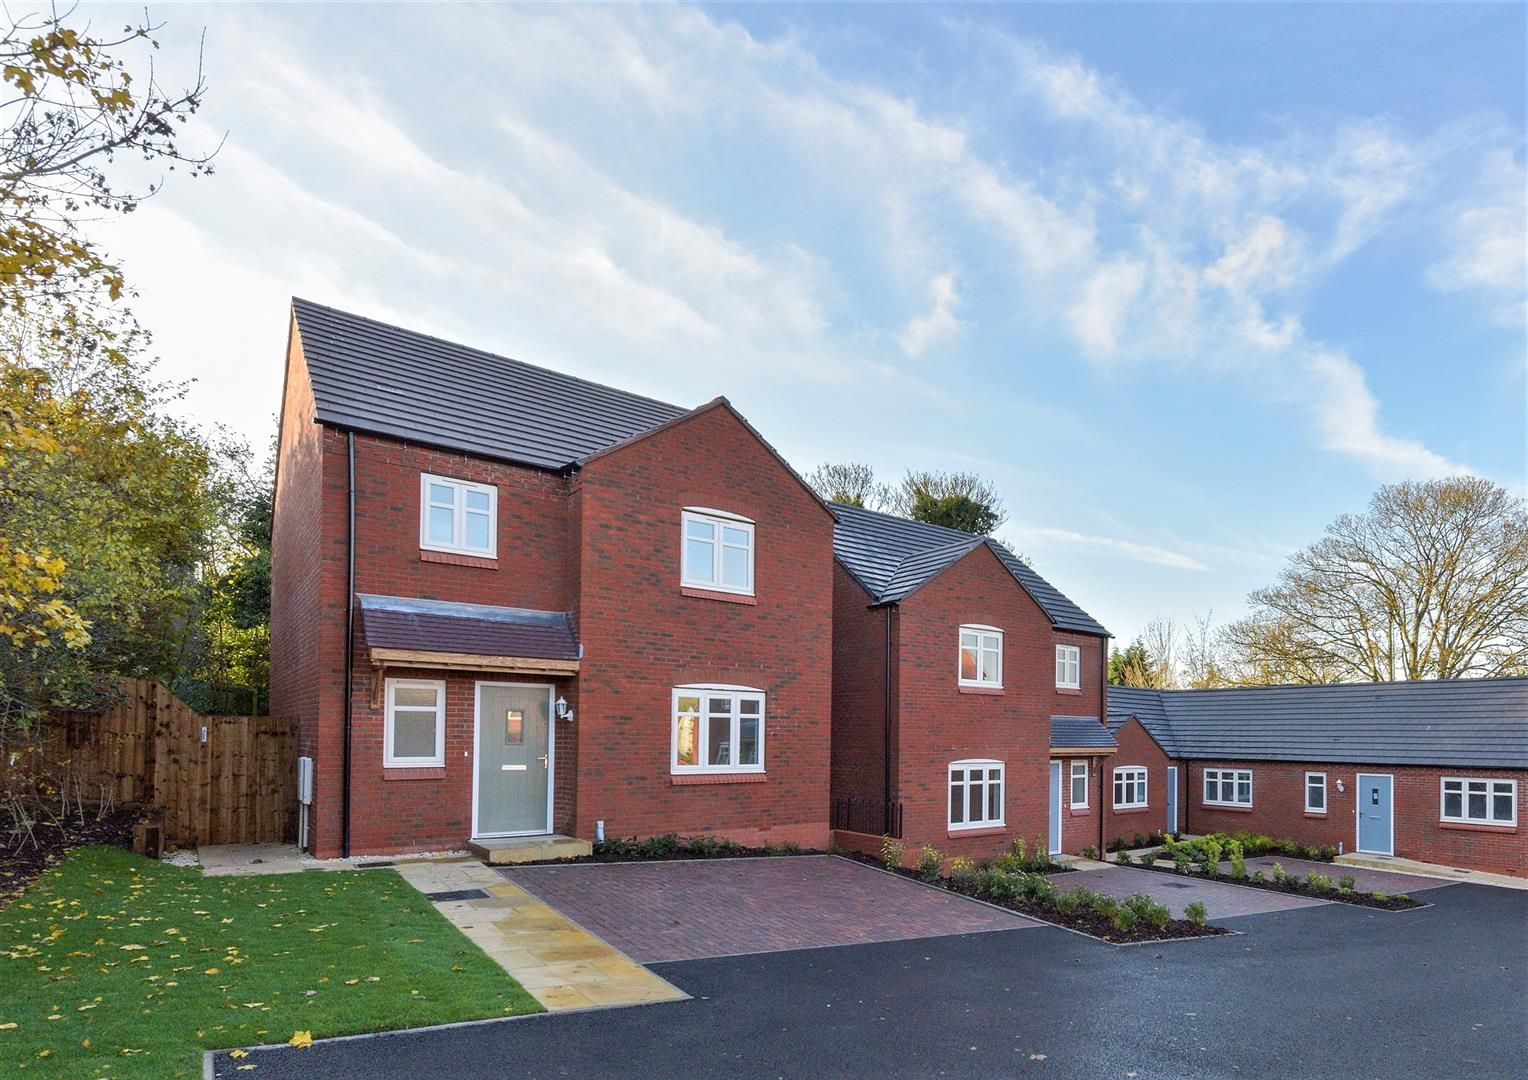 3 bed detached for sale, DY9